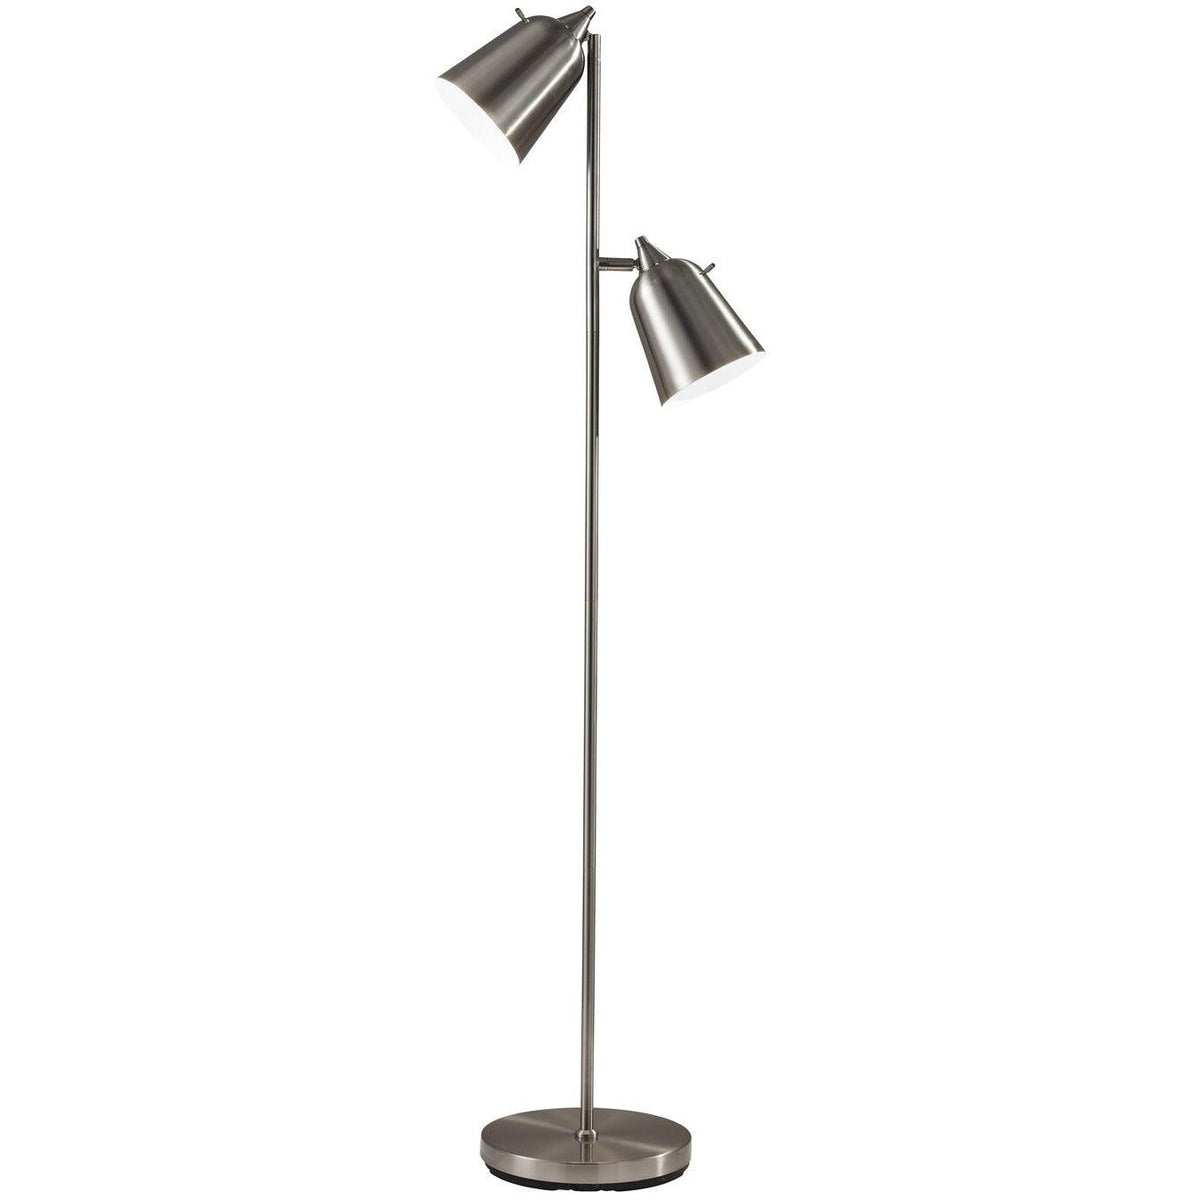 Adesso Home - 3237-22 - Two Light Floor Lamp - Malcolm - Brushed Steel